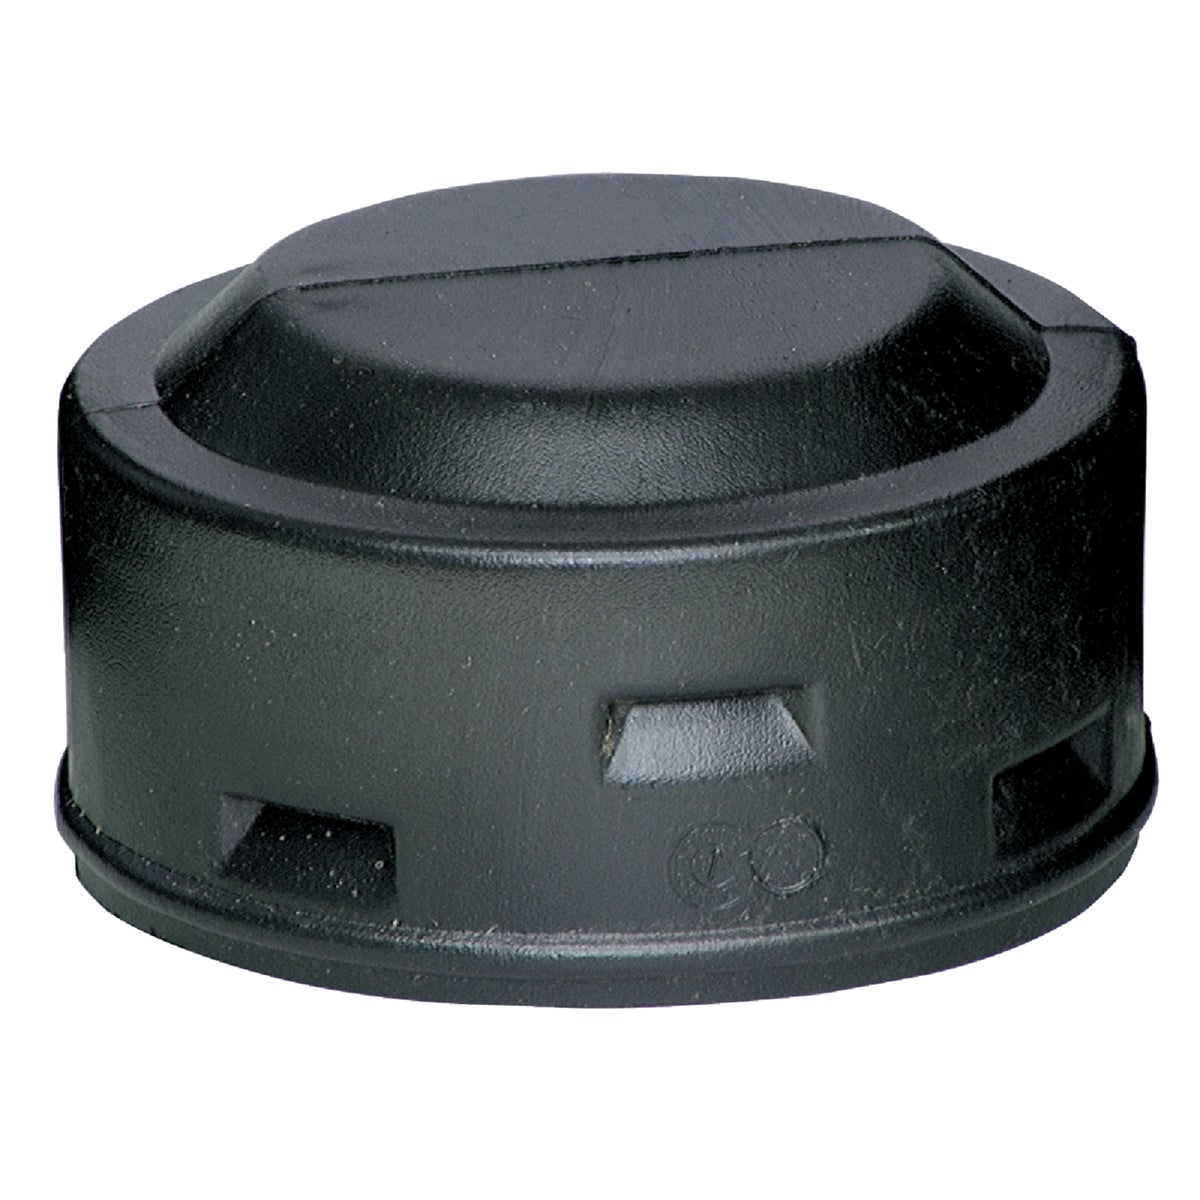 "3"" END CAP - 332AA by Advanced Drainage Sy"